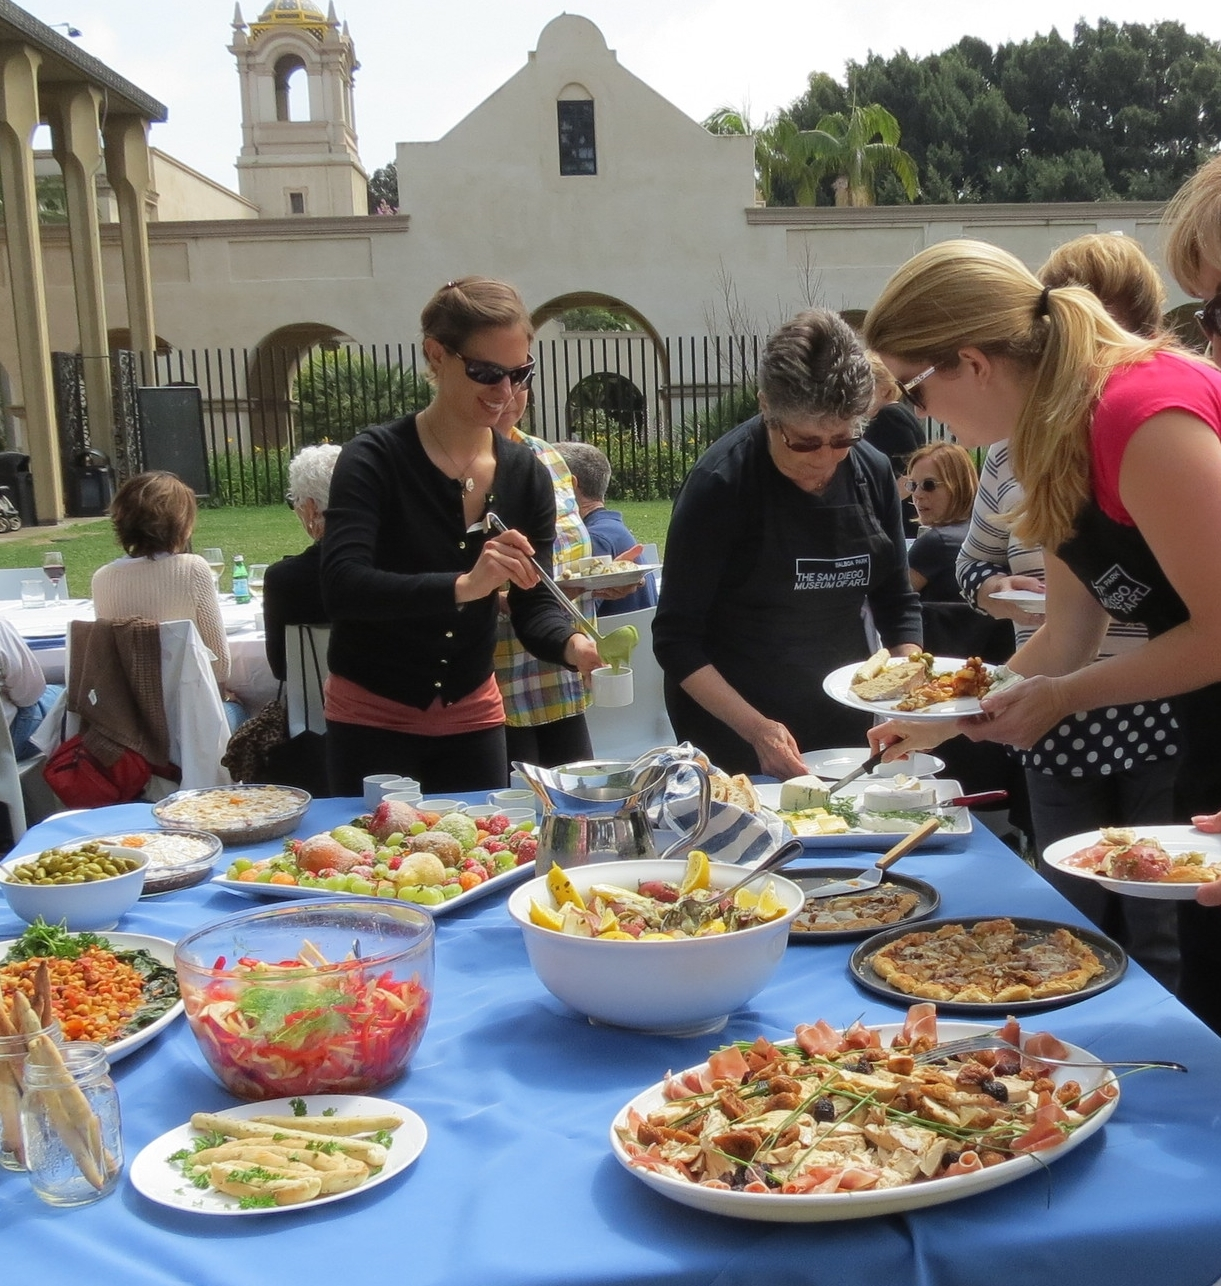 Artful Cooking: A French Impressionist Picnic at the San Diego Museum of Art (Carol's daughter, Amanda, at left, helping guests)